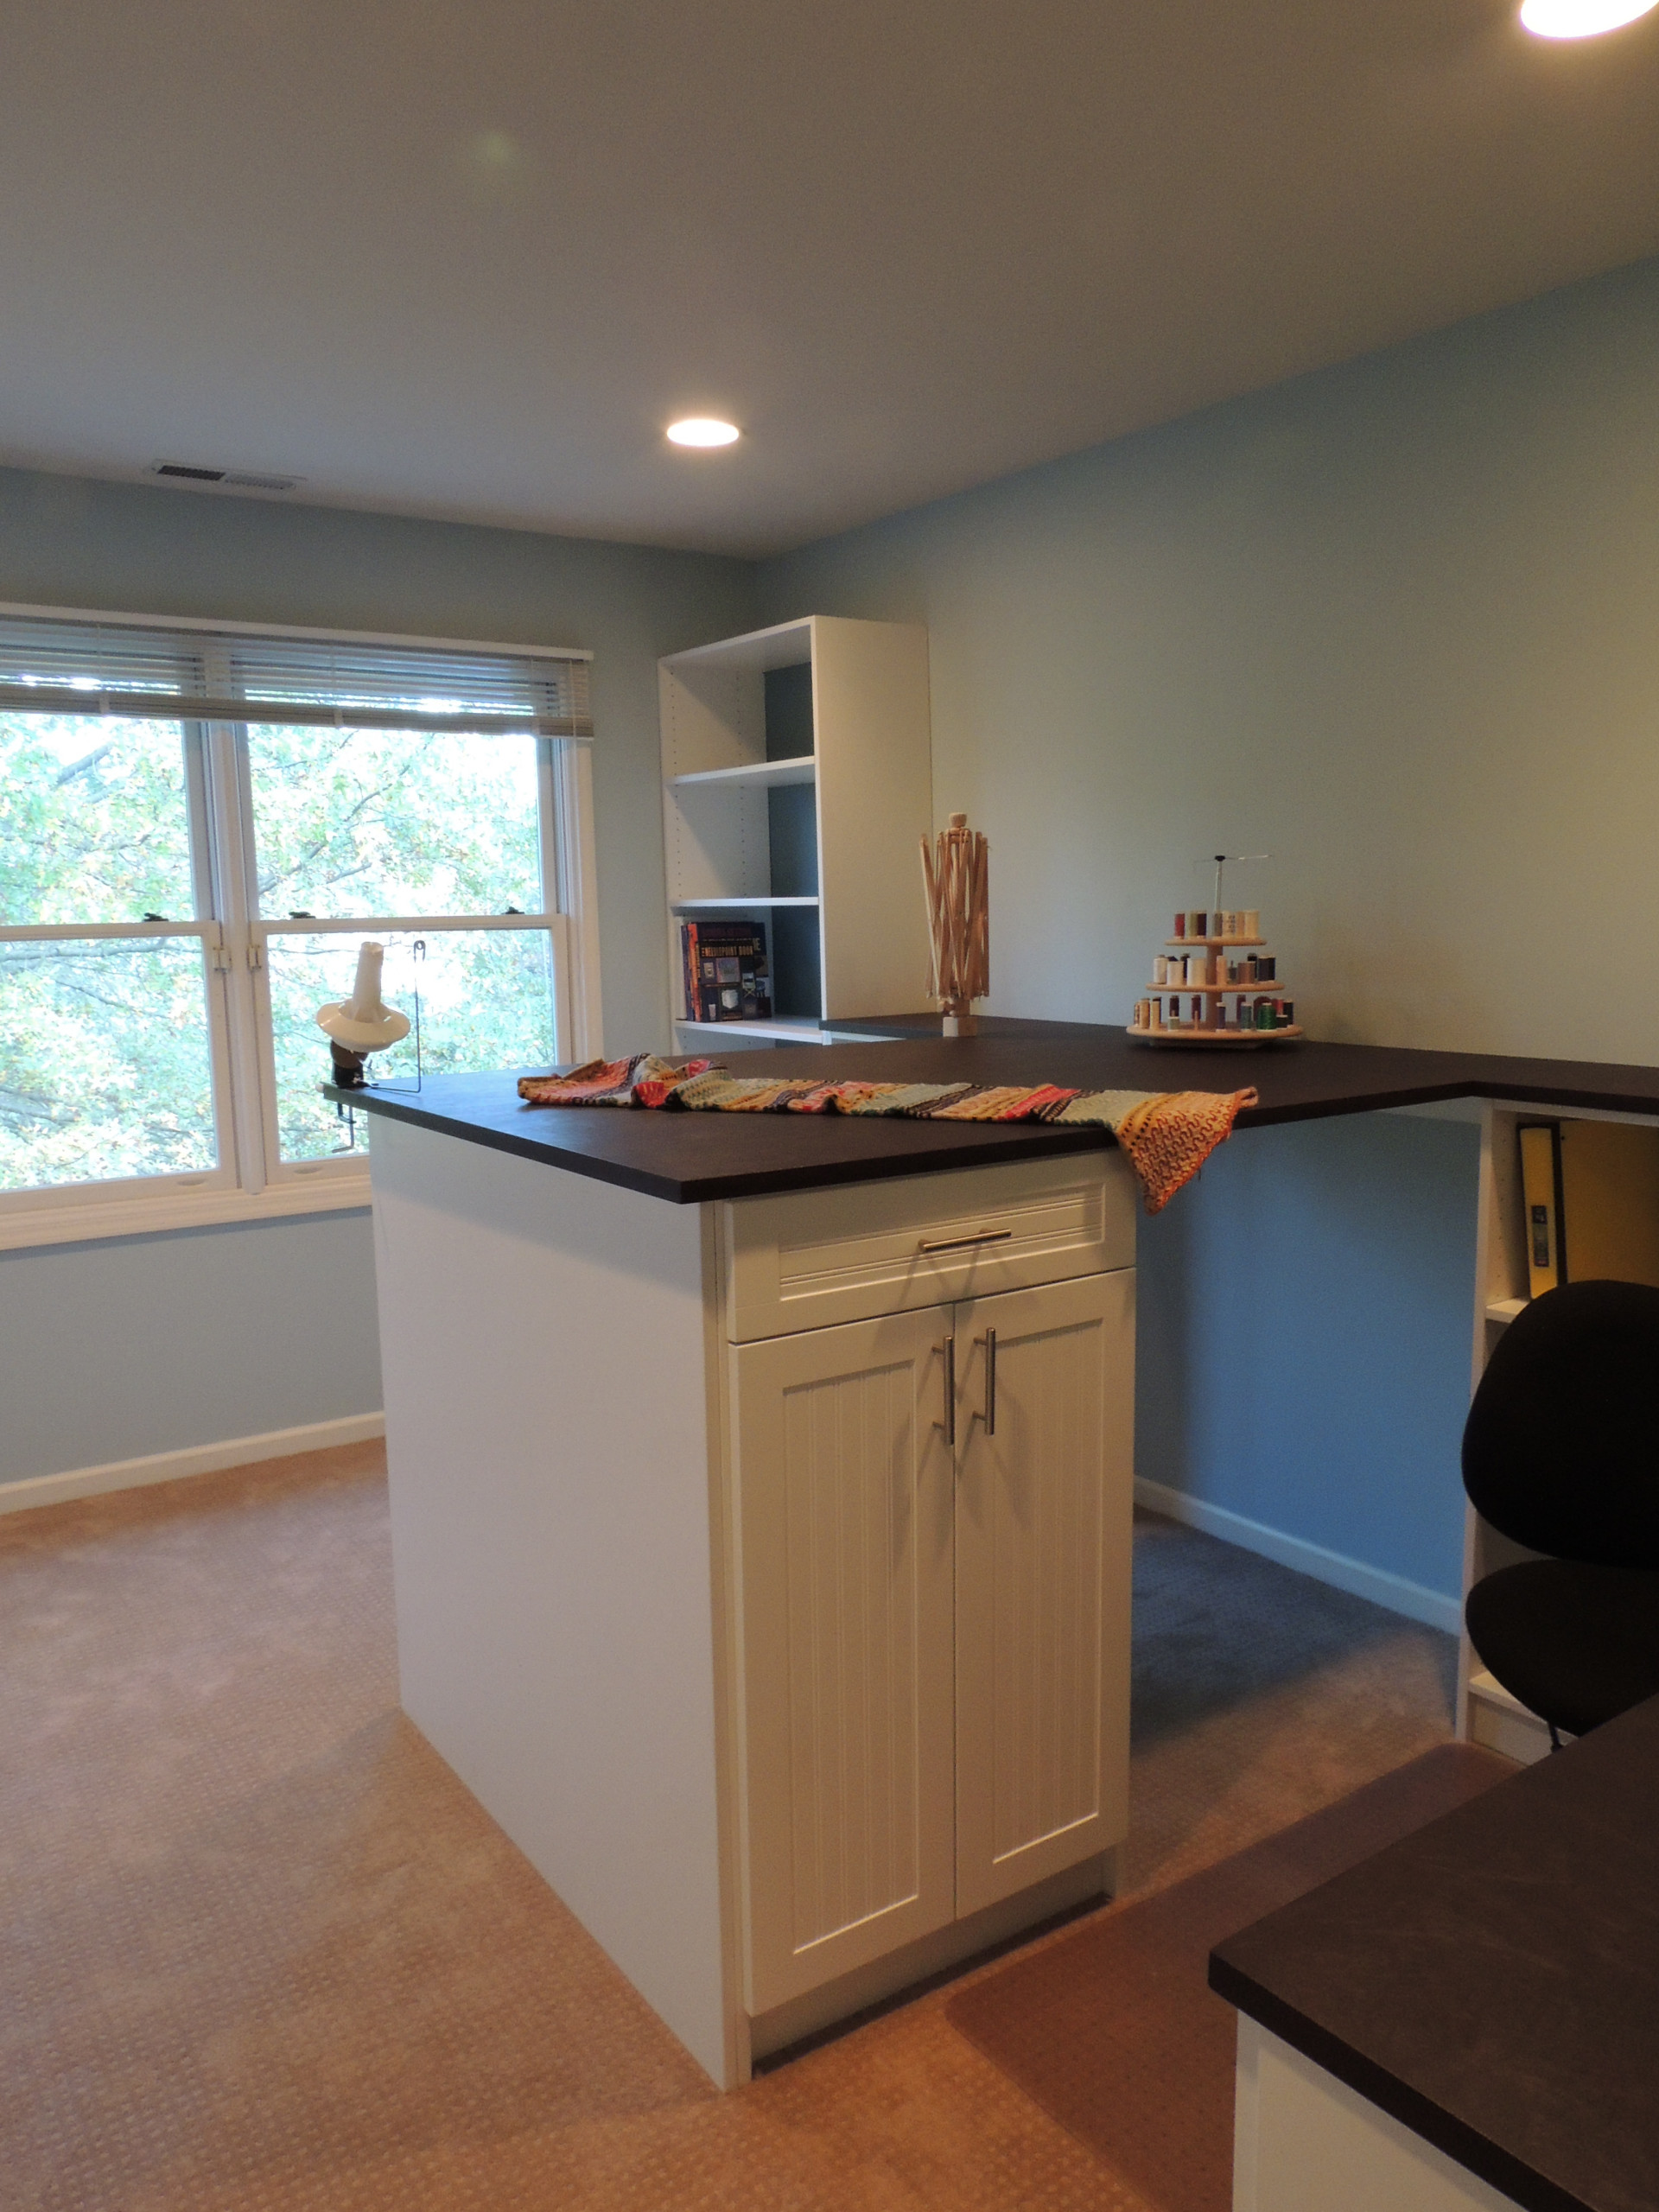 CRAFT ROOM/HOME OFFICE